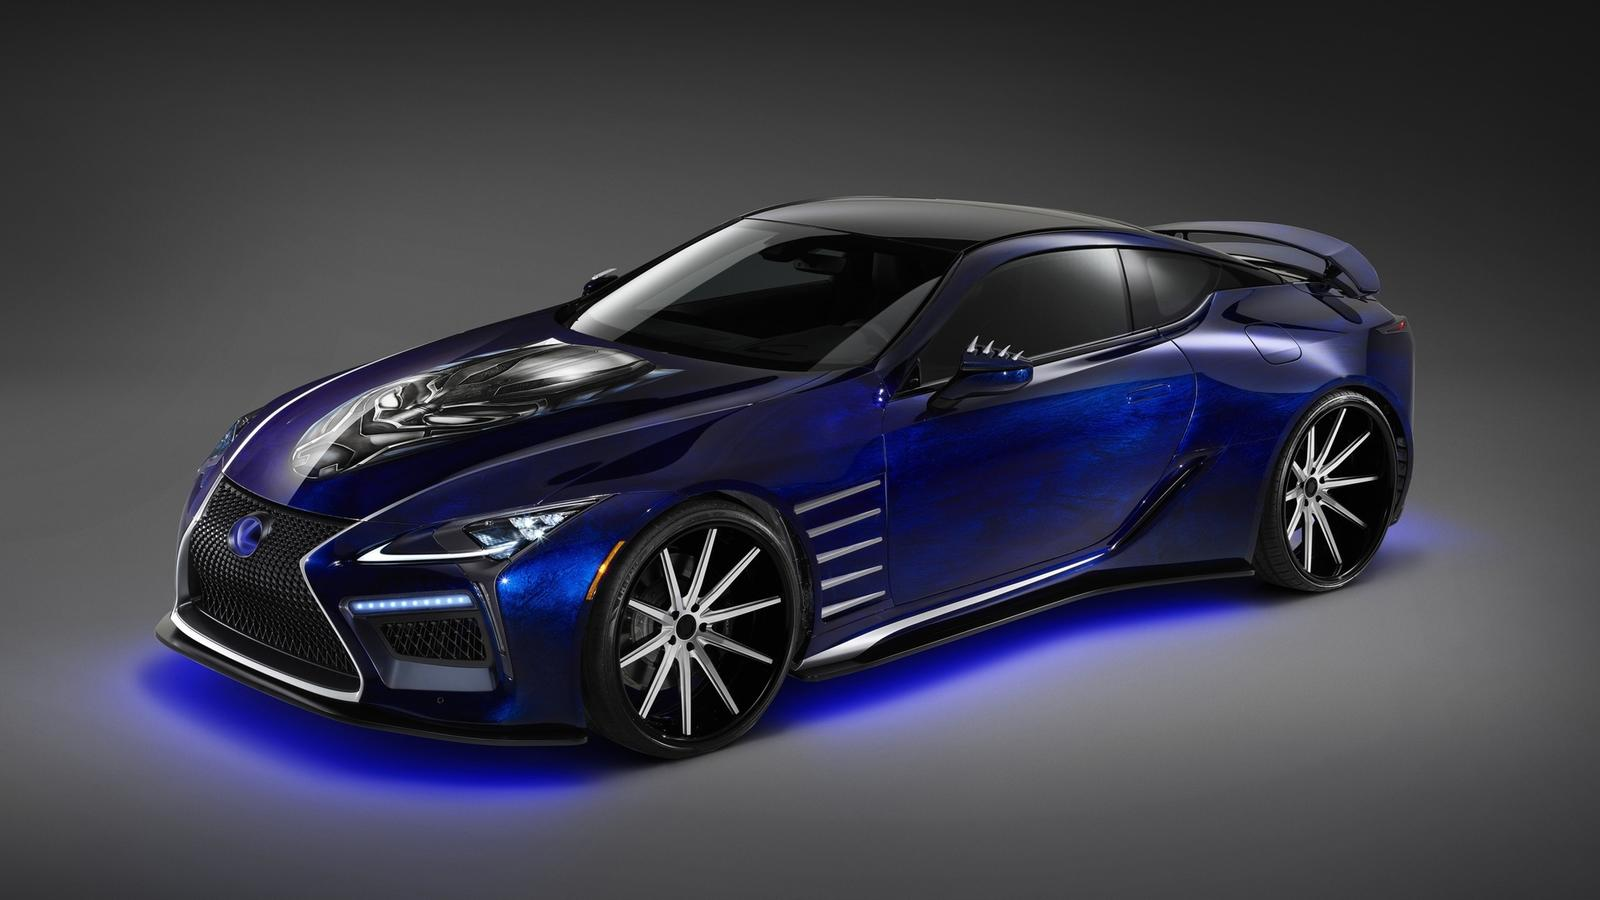 2017 Lexus Lc 500 Inspired By Black Panther Pictures Photos